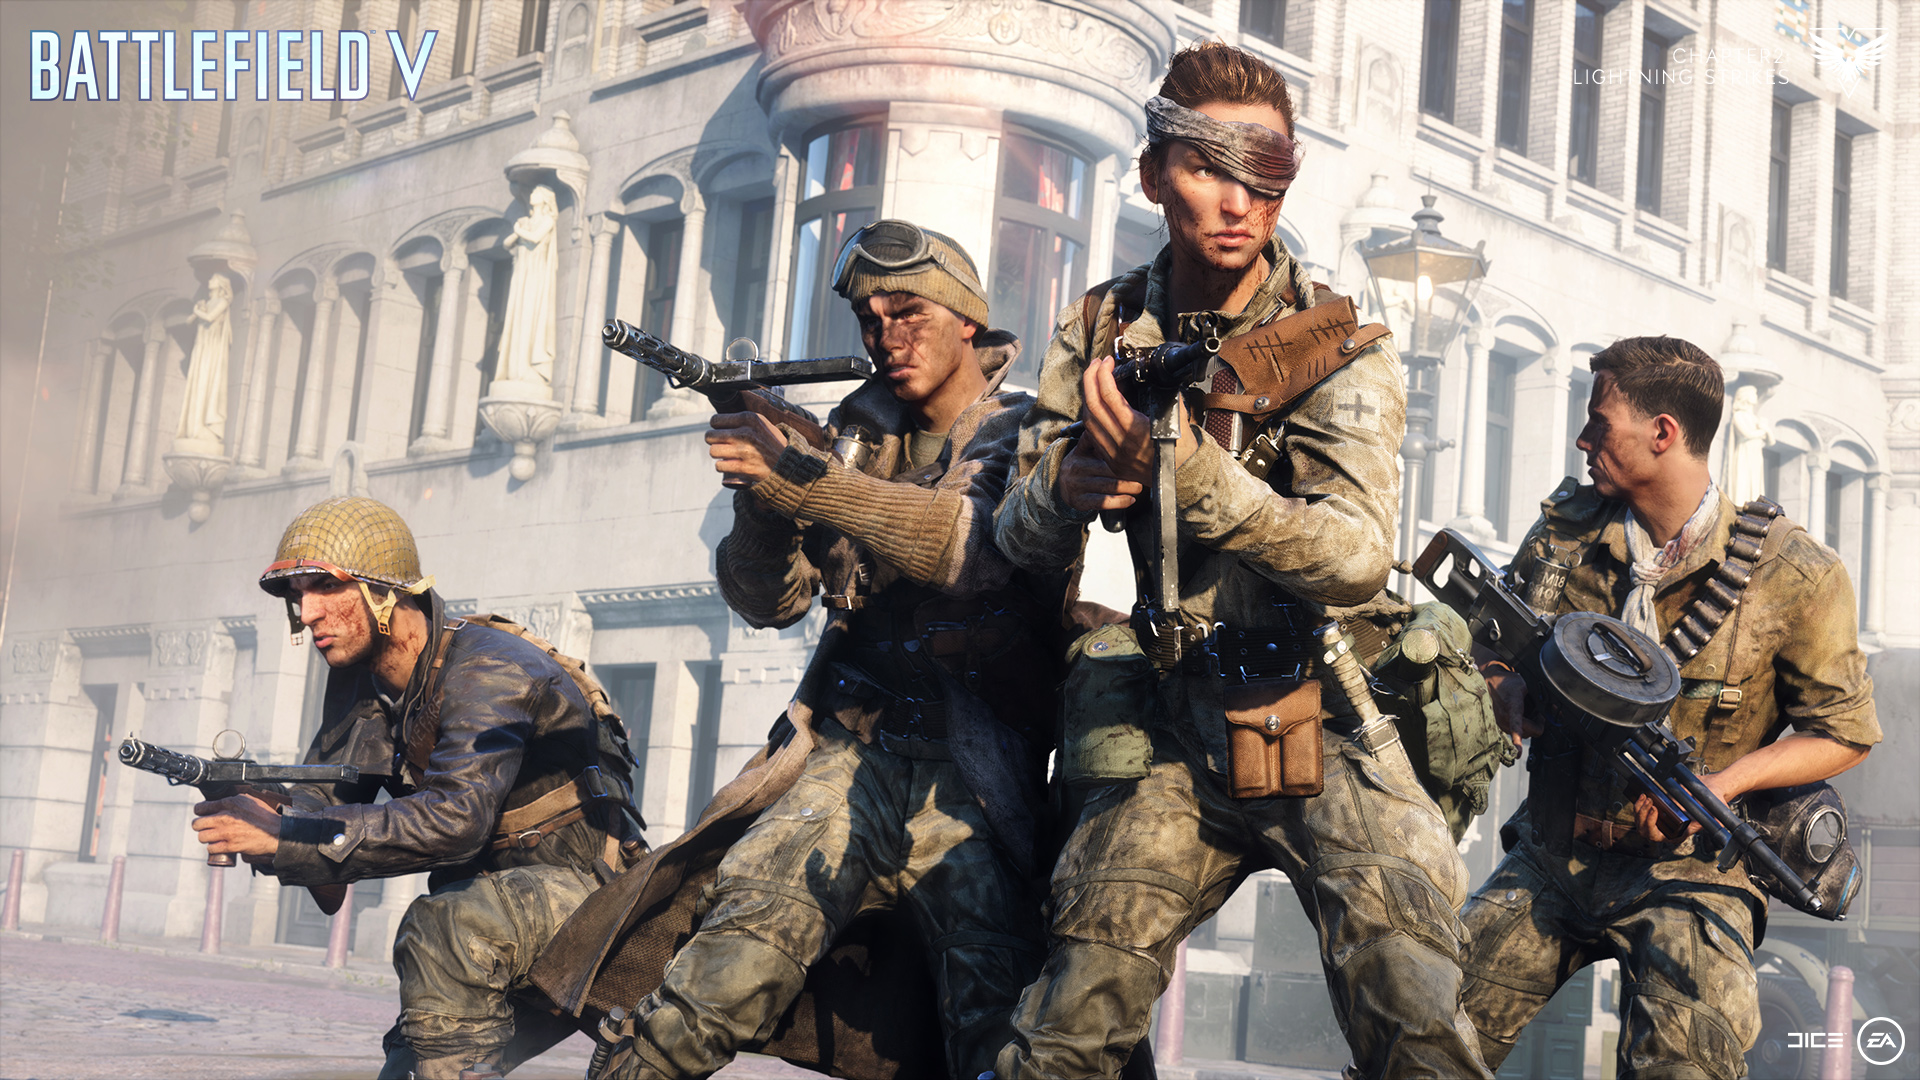 Battlefield V is rolling out real-money cosmetic items and time savers screenshot